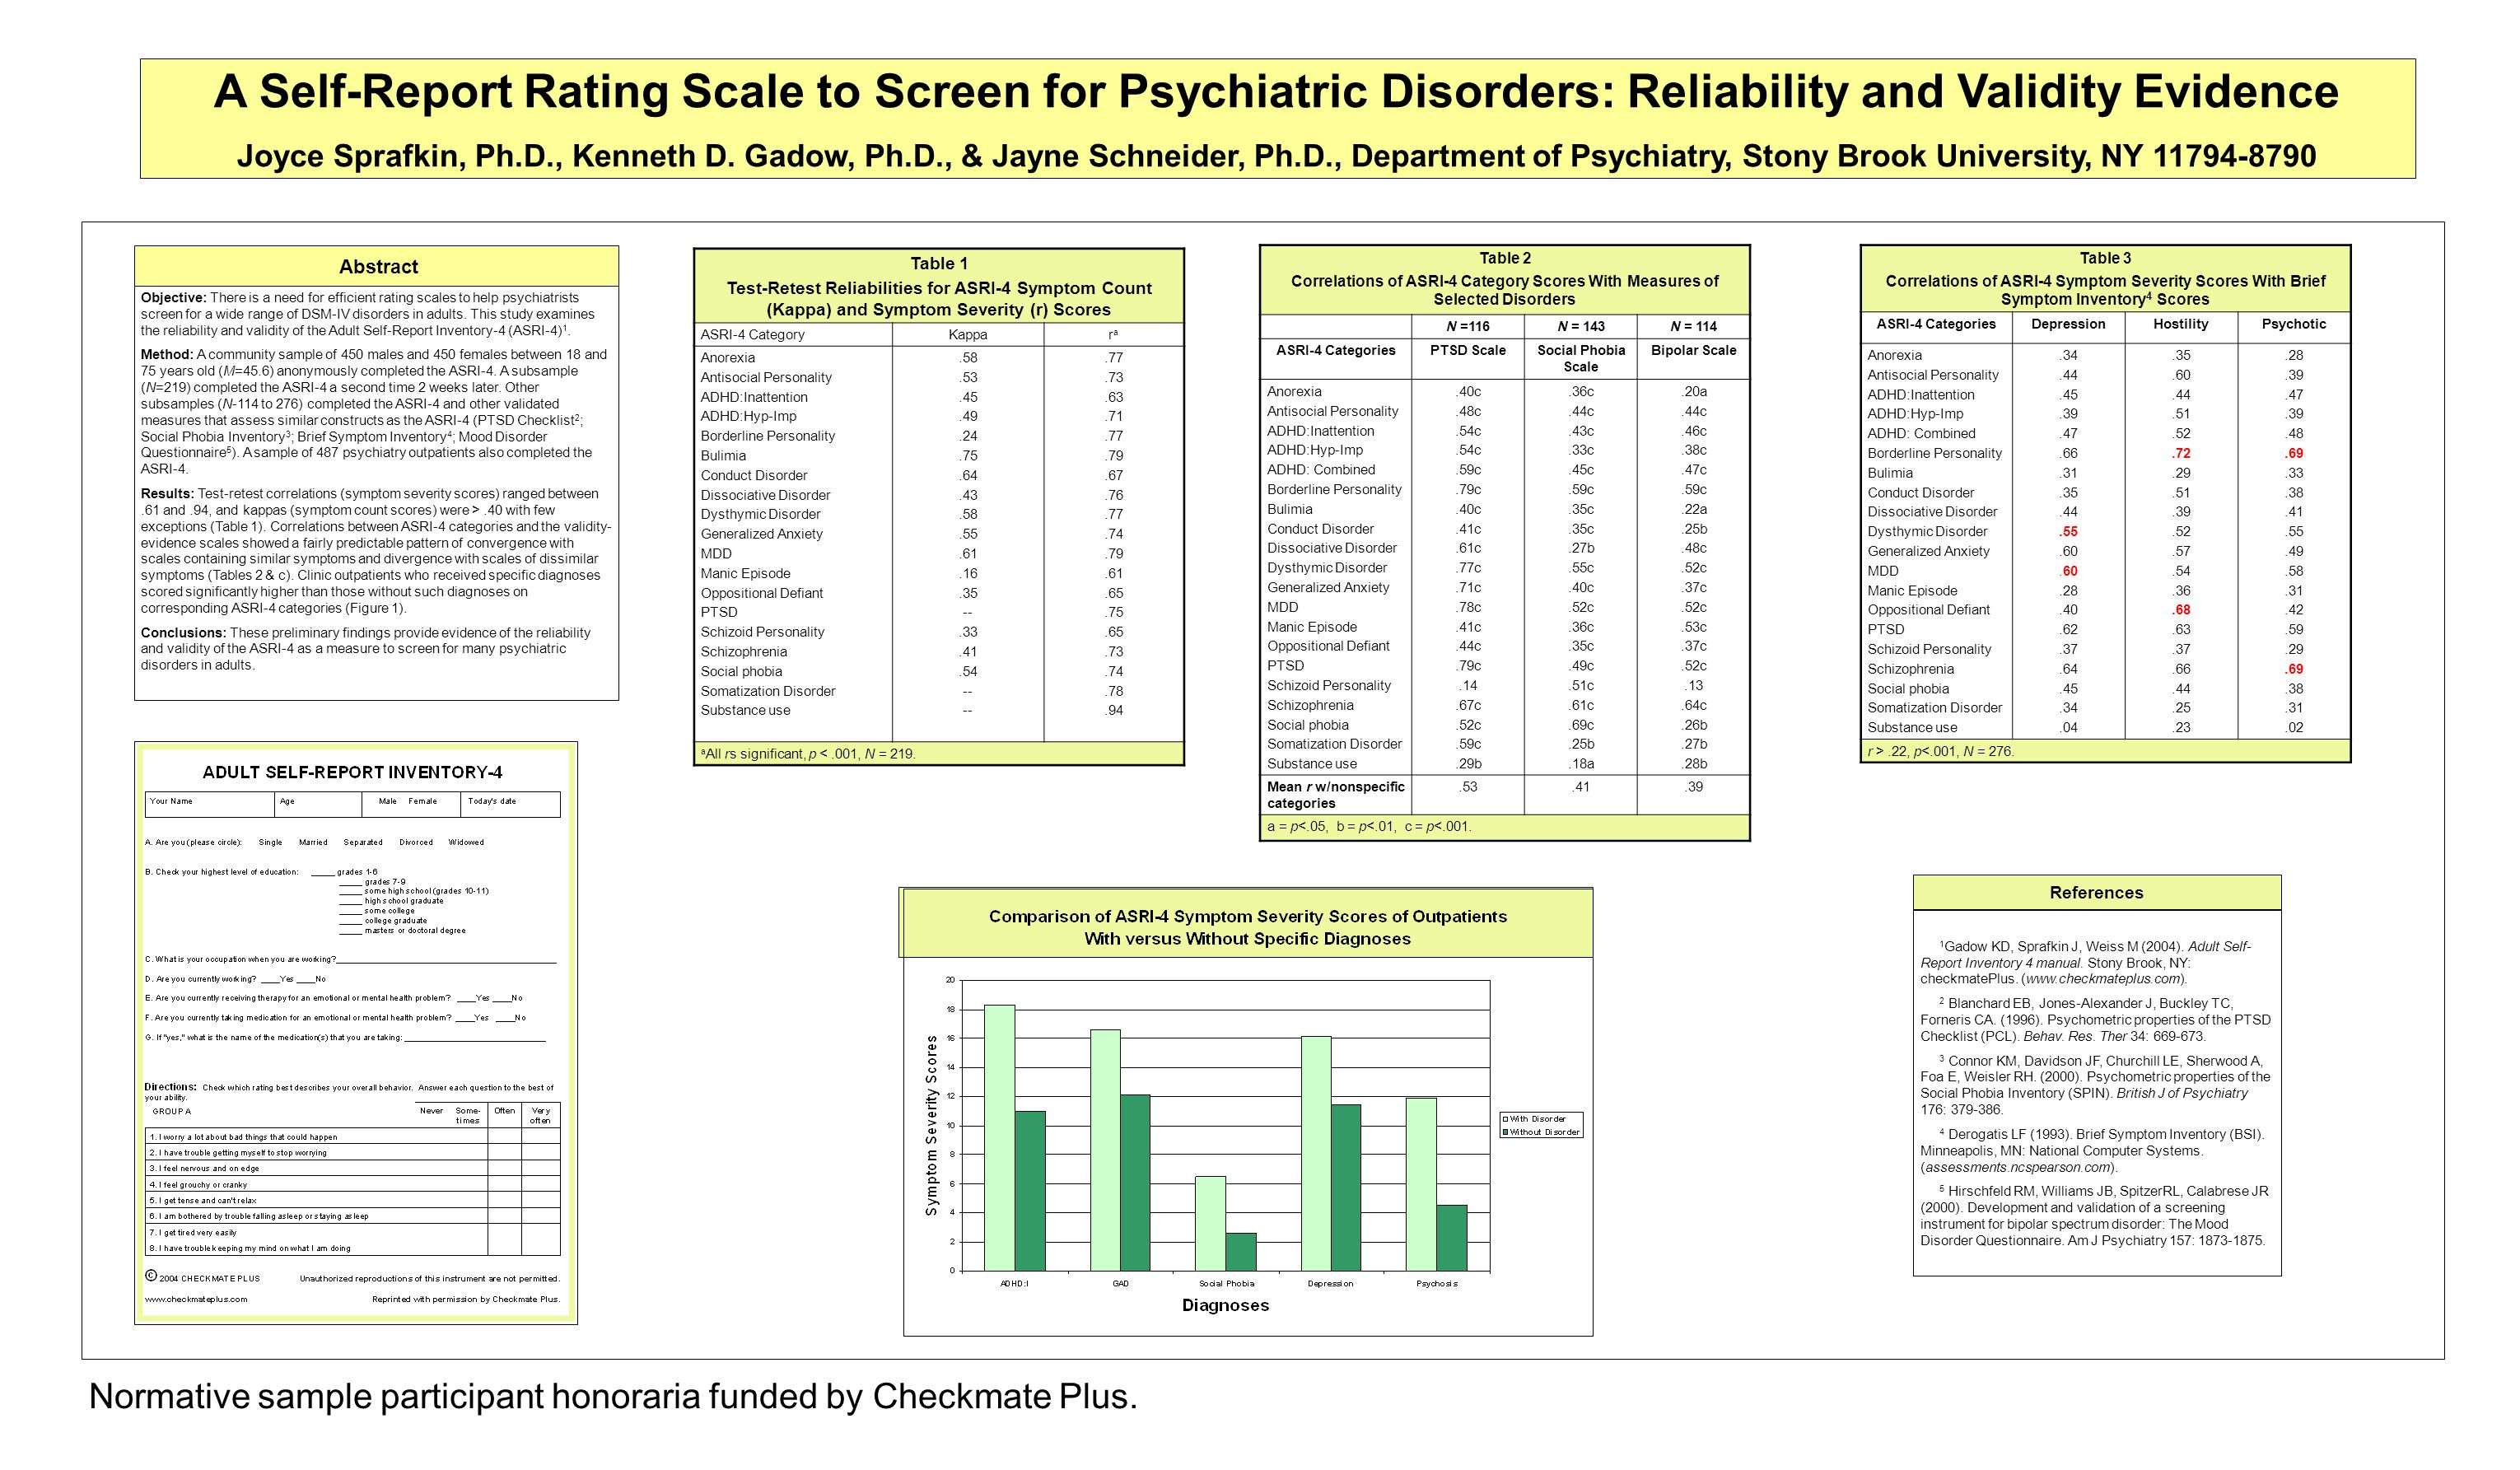 A Self-Report Rating Scale to Screen for Psychiatric Disorders: Reliability and Validity Evidence